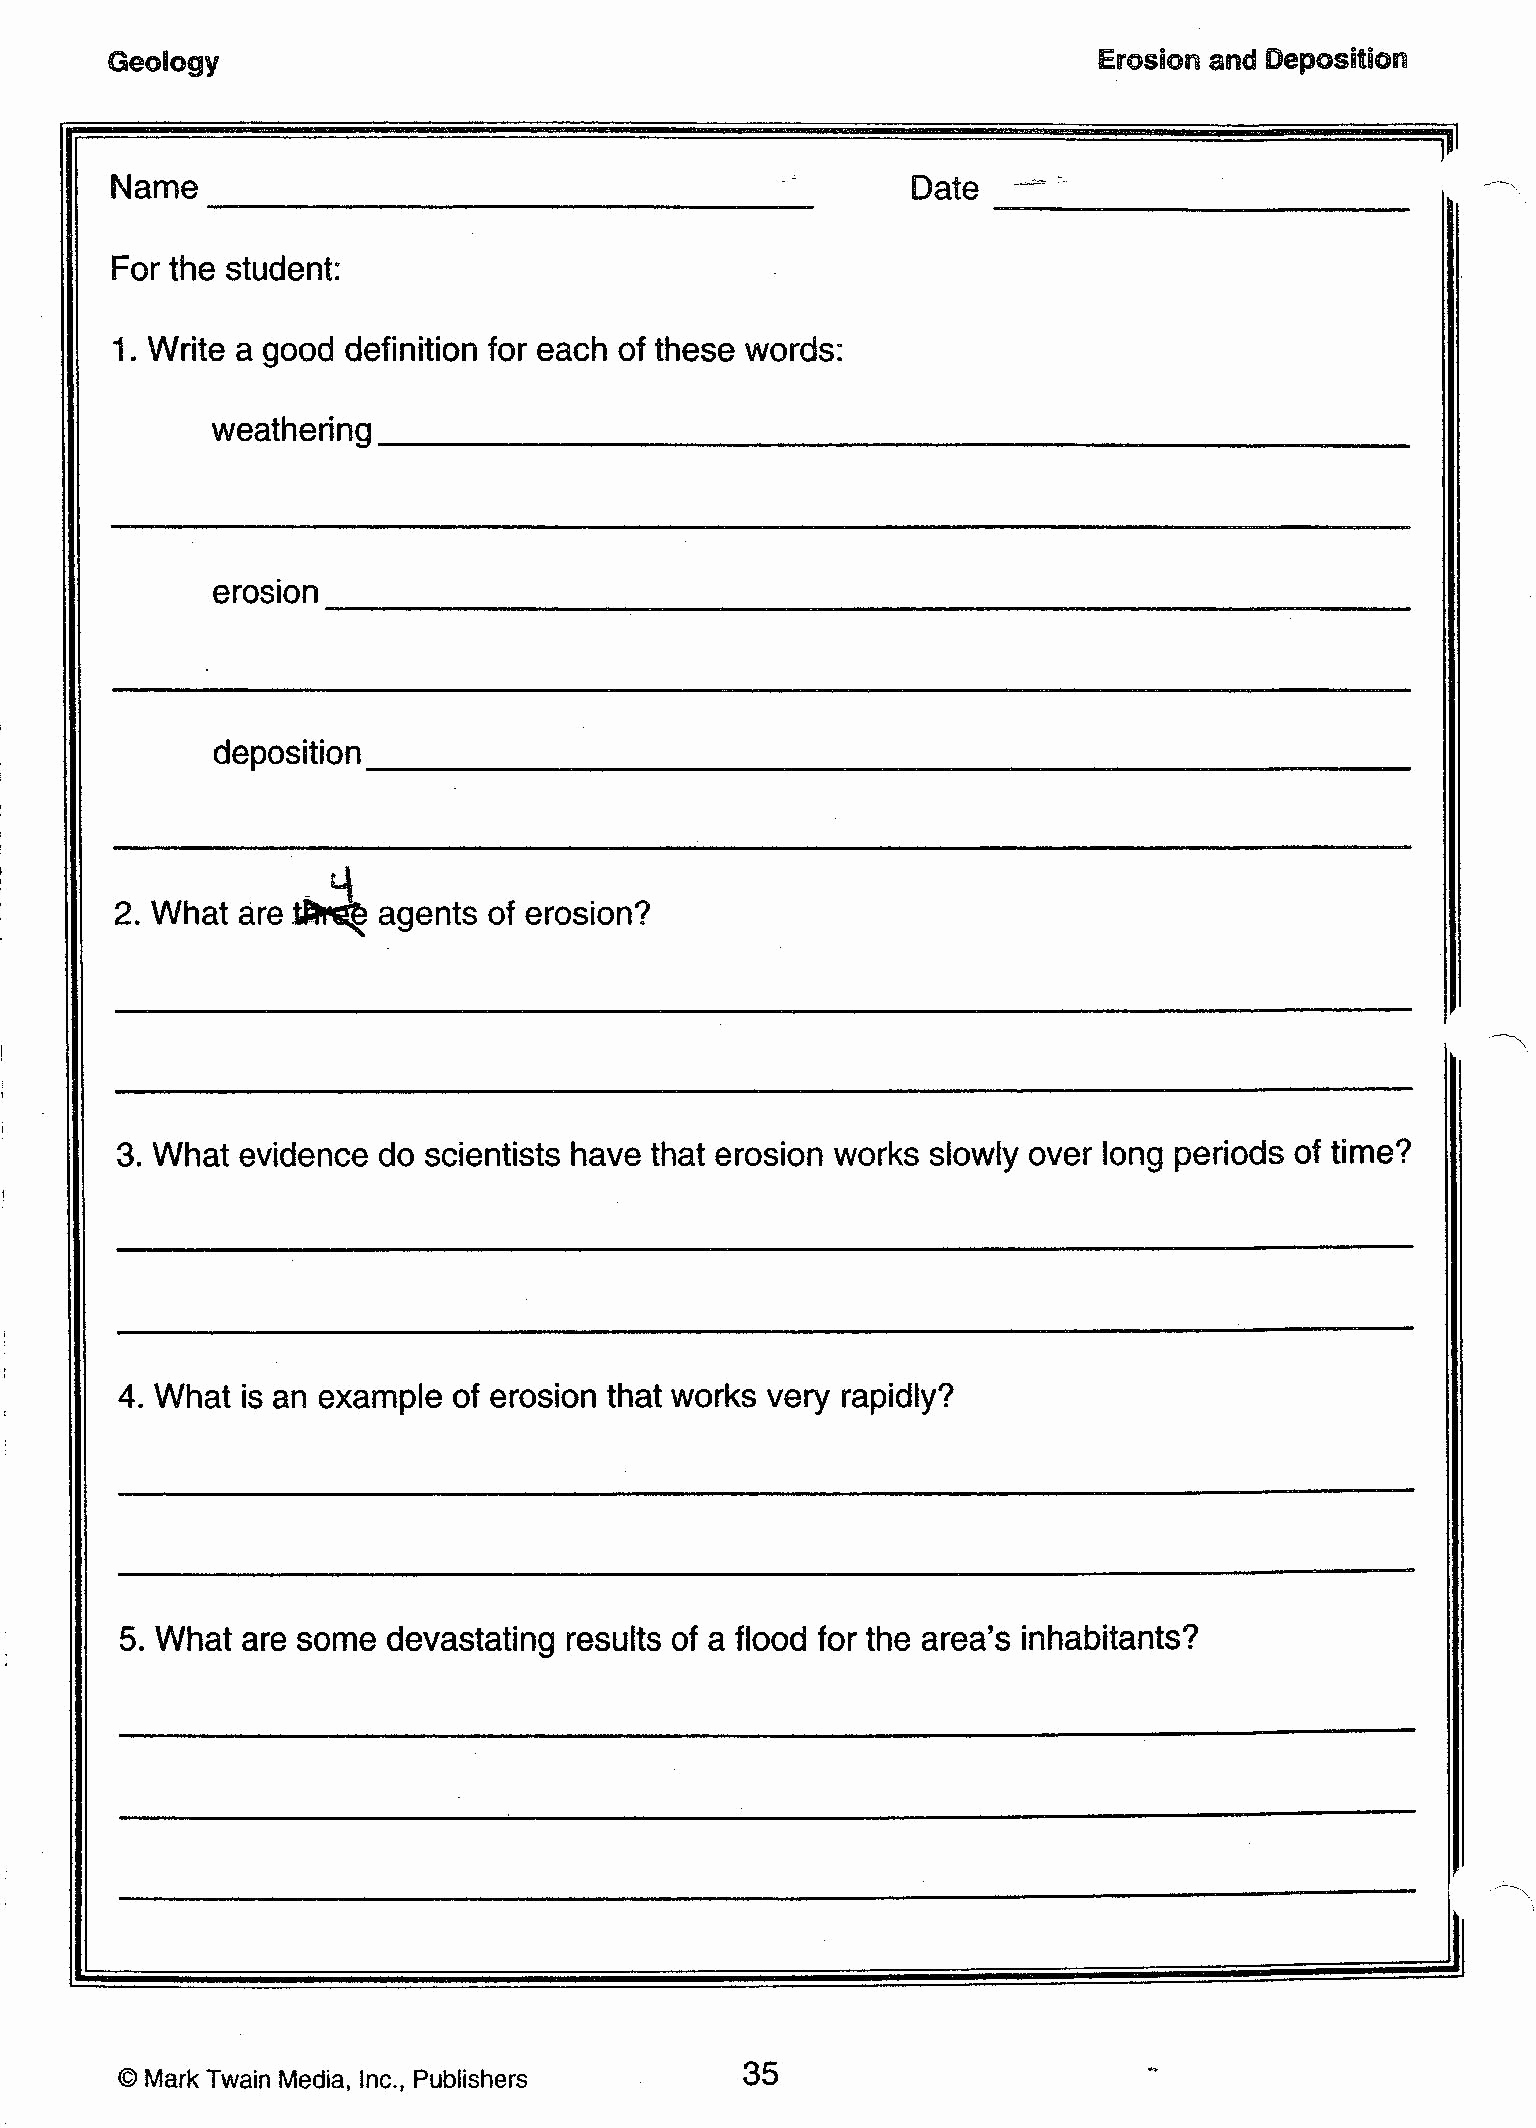 Science Worksheets for 5th Grade Beautiful Environmental Science Worksheets for High School